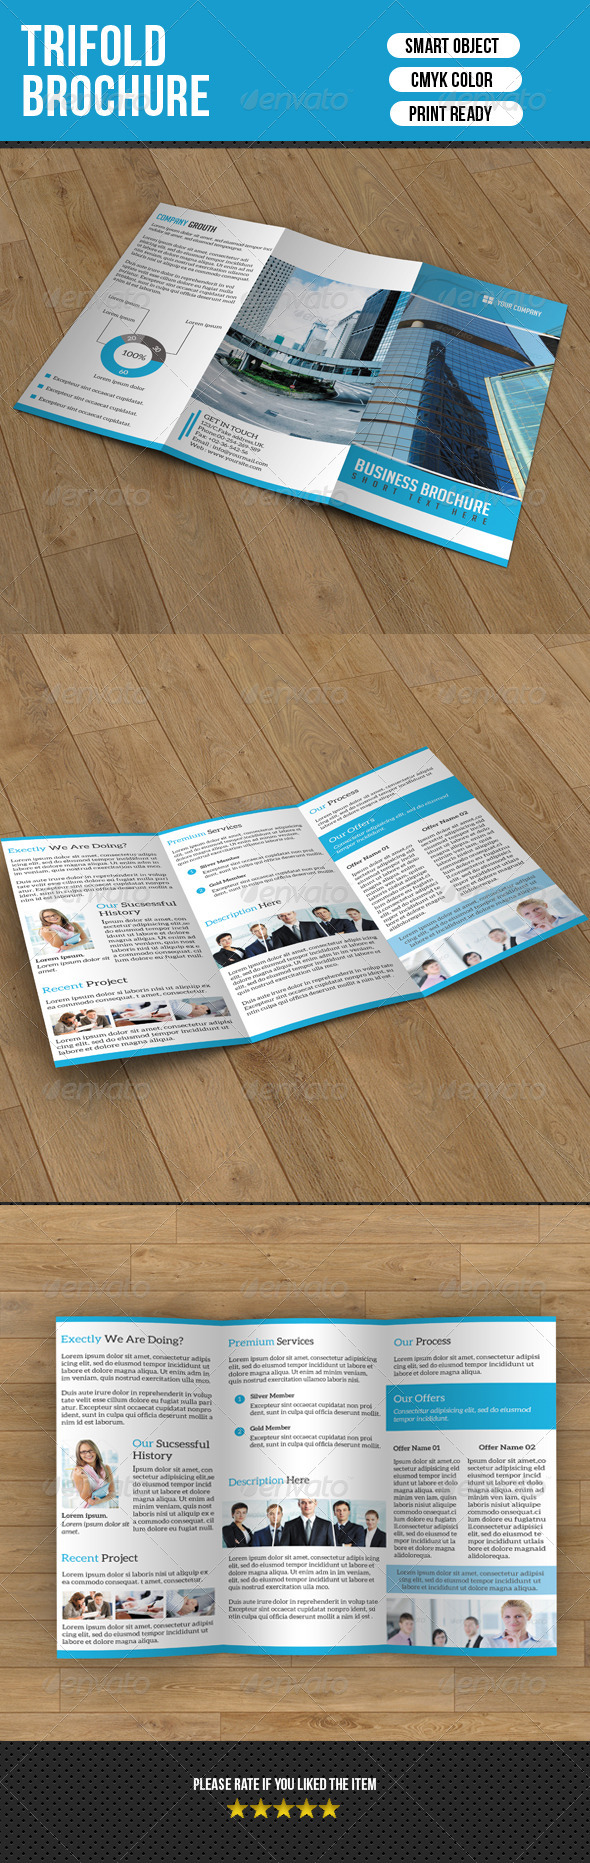 Trifold Brochure for Business - Corporate Brochures